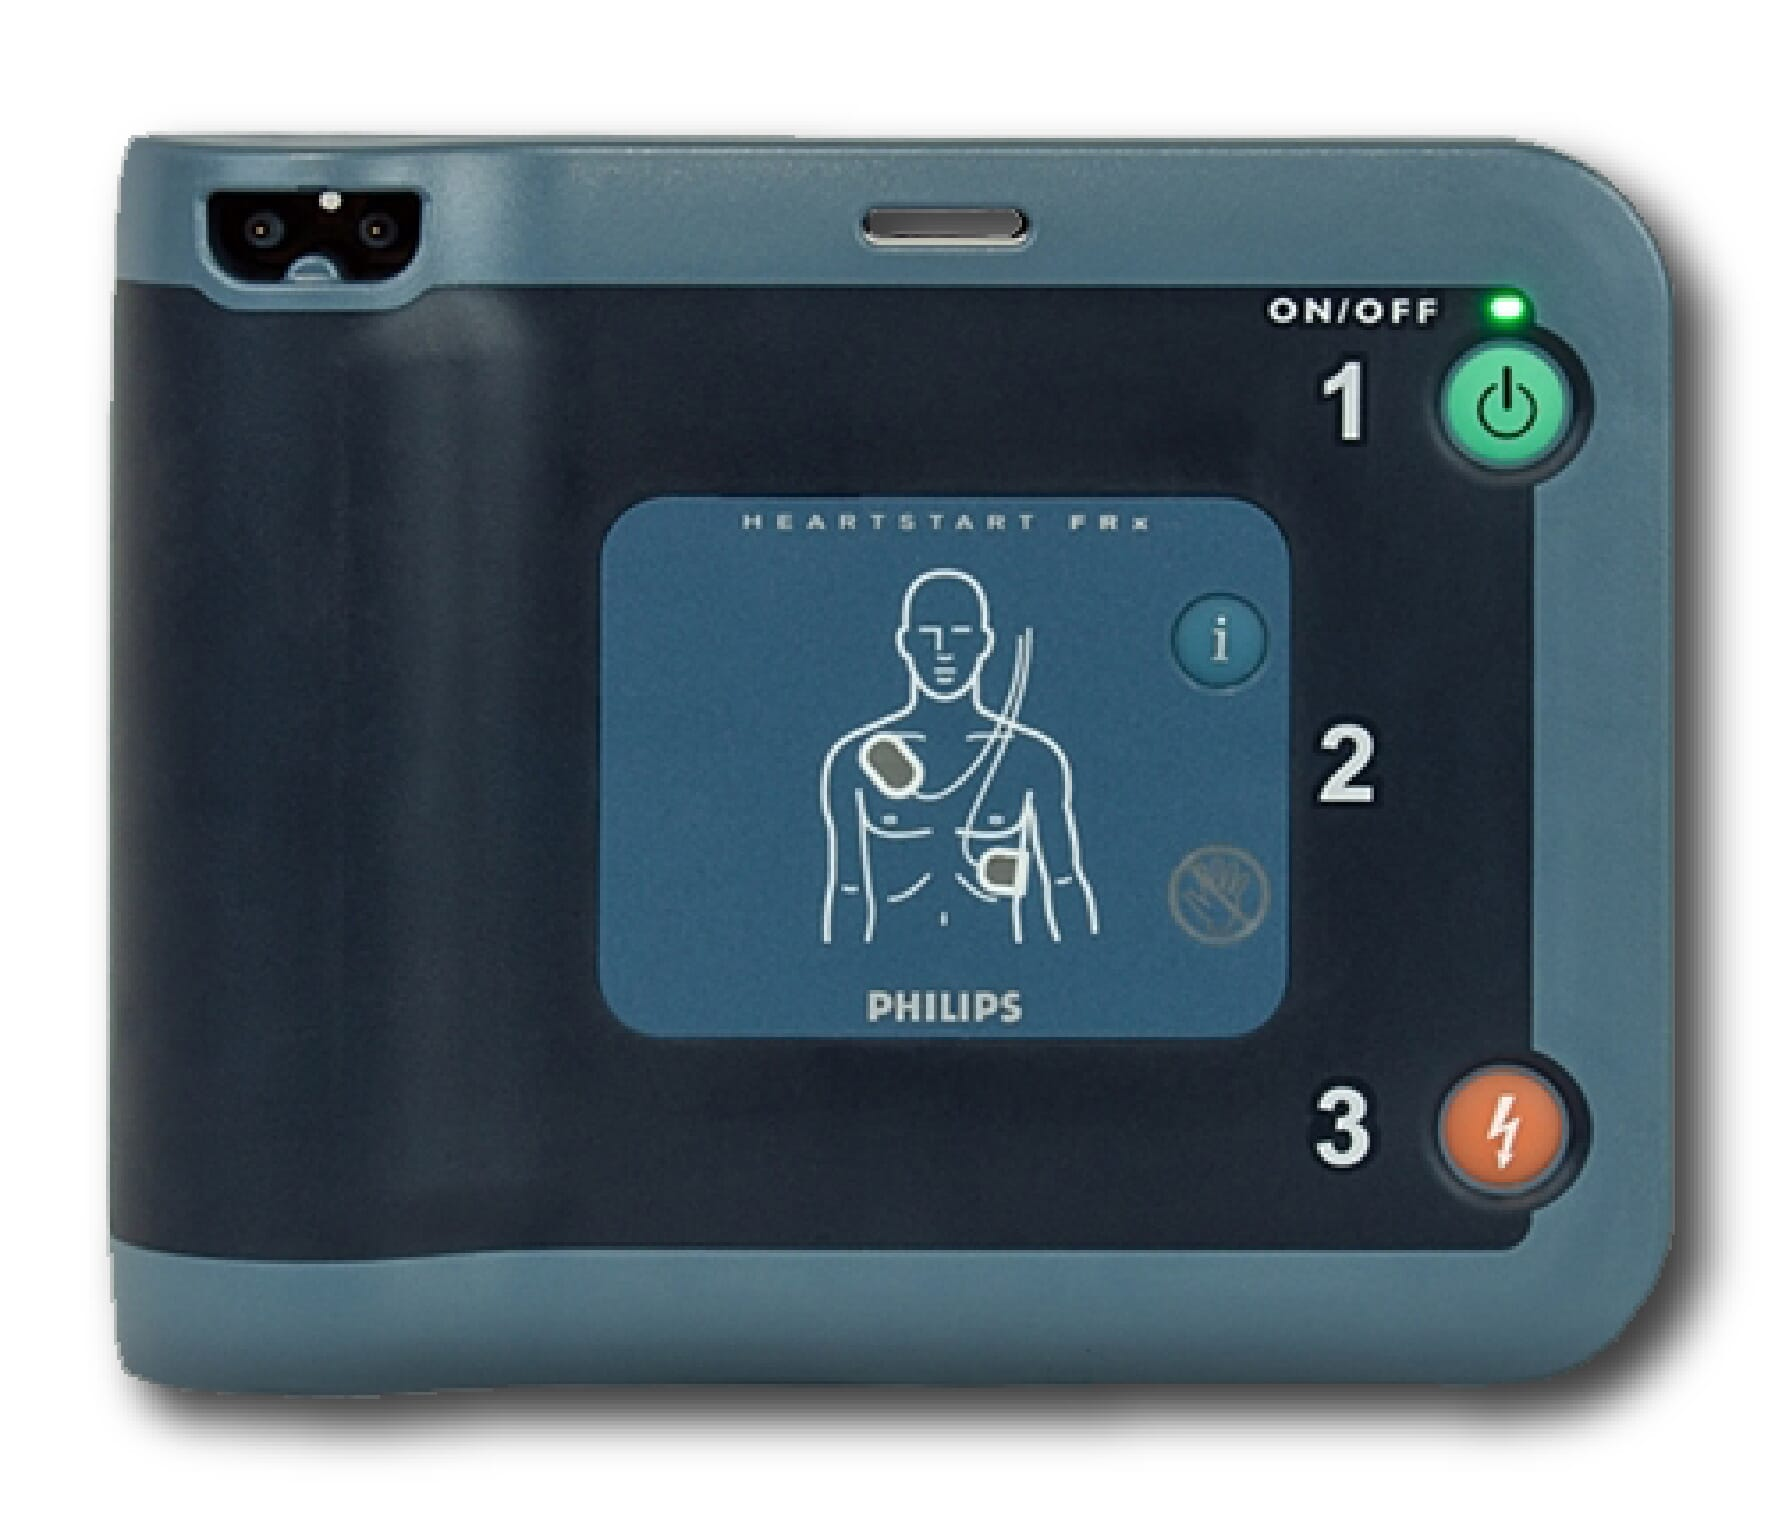 Philips HeartStart FRx AED in Stockton